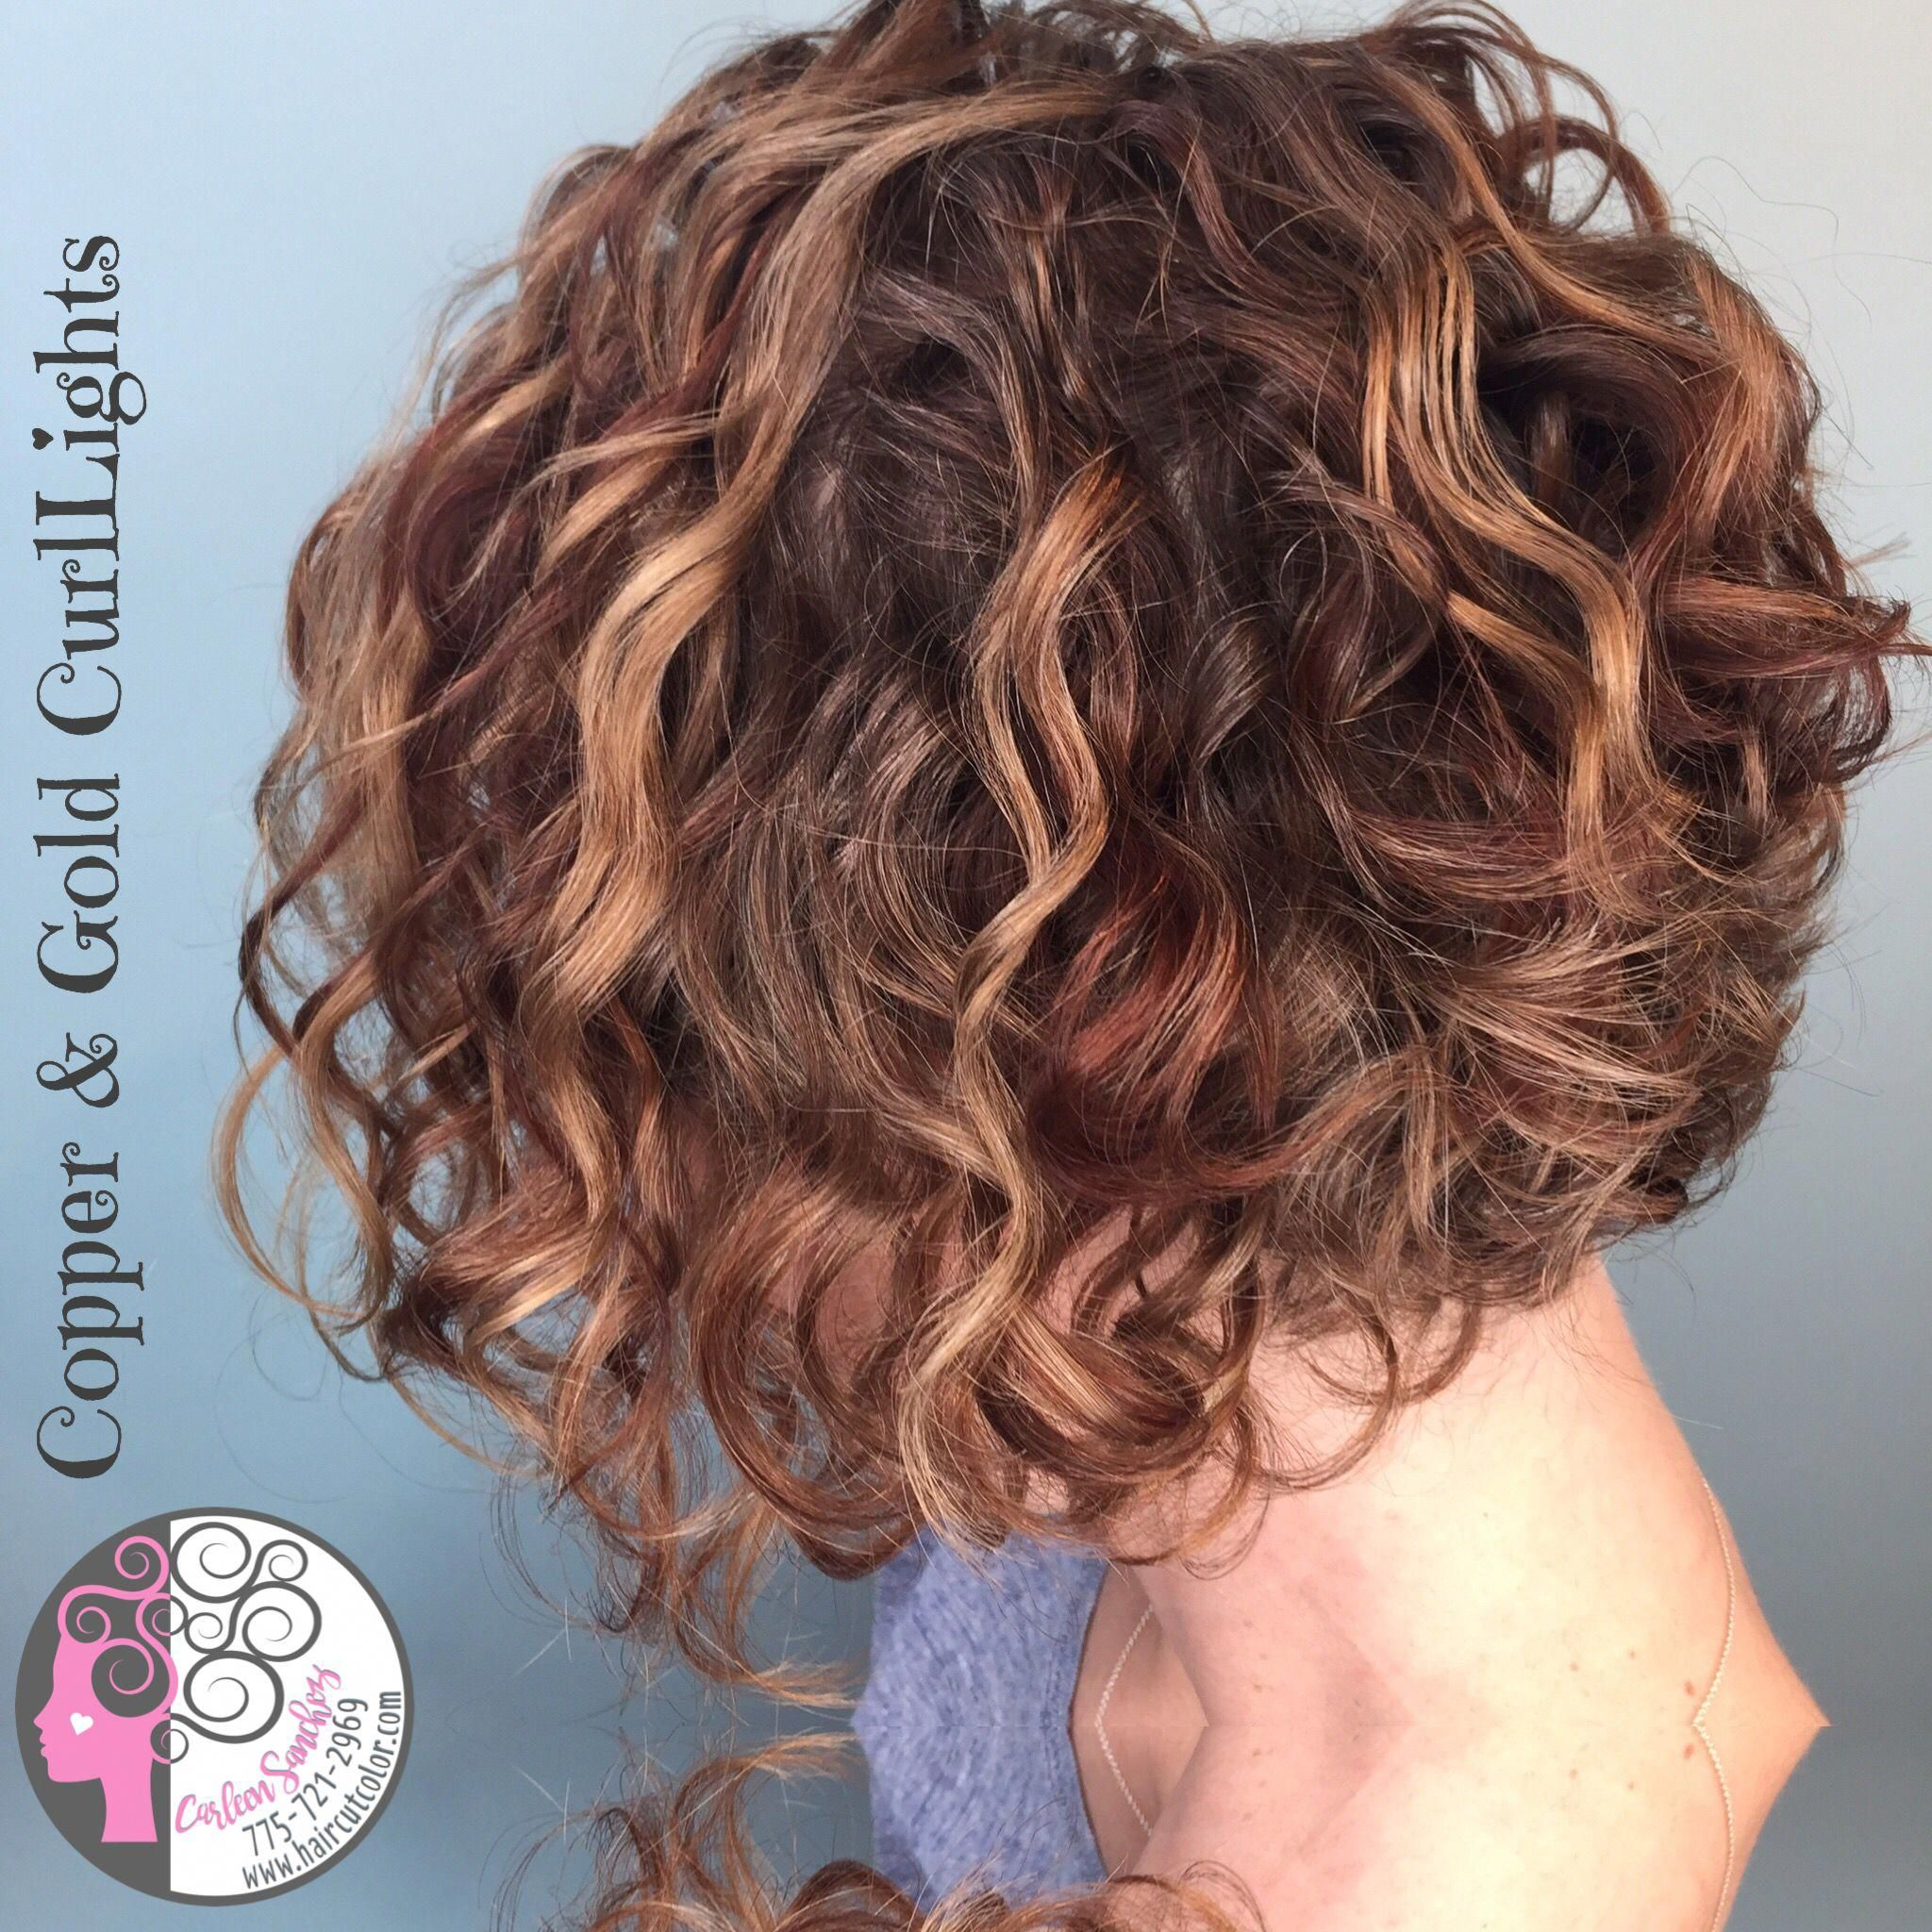 Copper And Gold Curllights Highlights For Curly Hair By Carleen Sanchez Naturally Curly Hair Curly Hair Styles Curly Hair Styles Naturally Colored Curly Hair